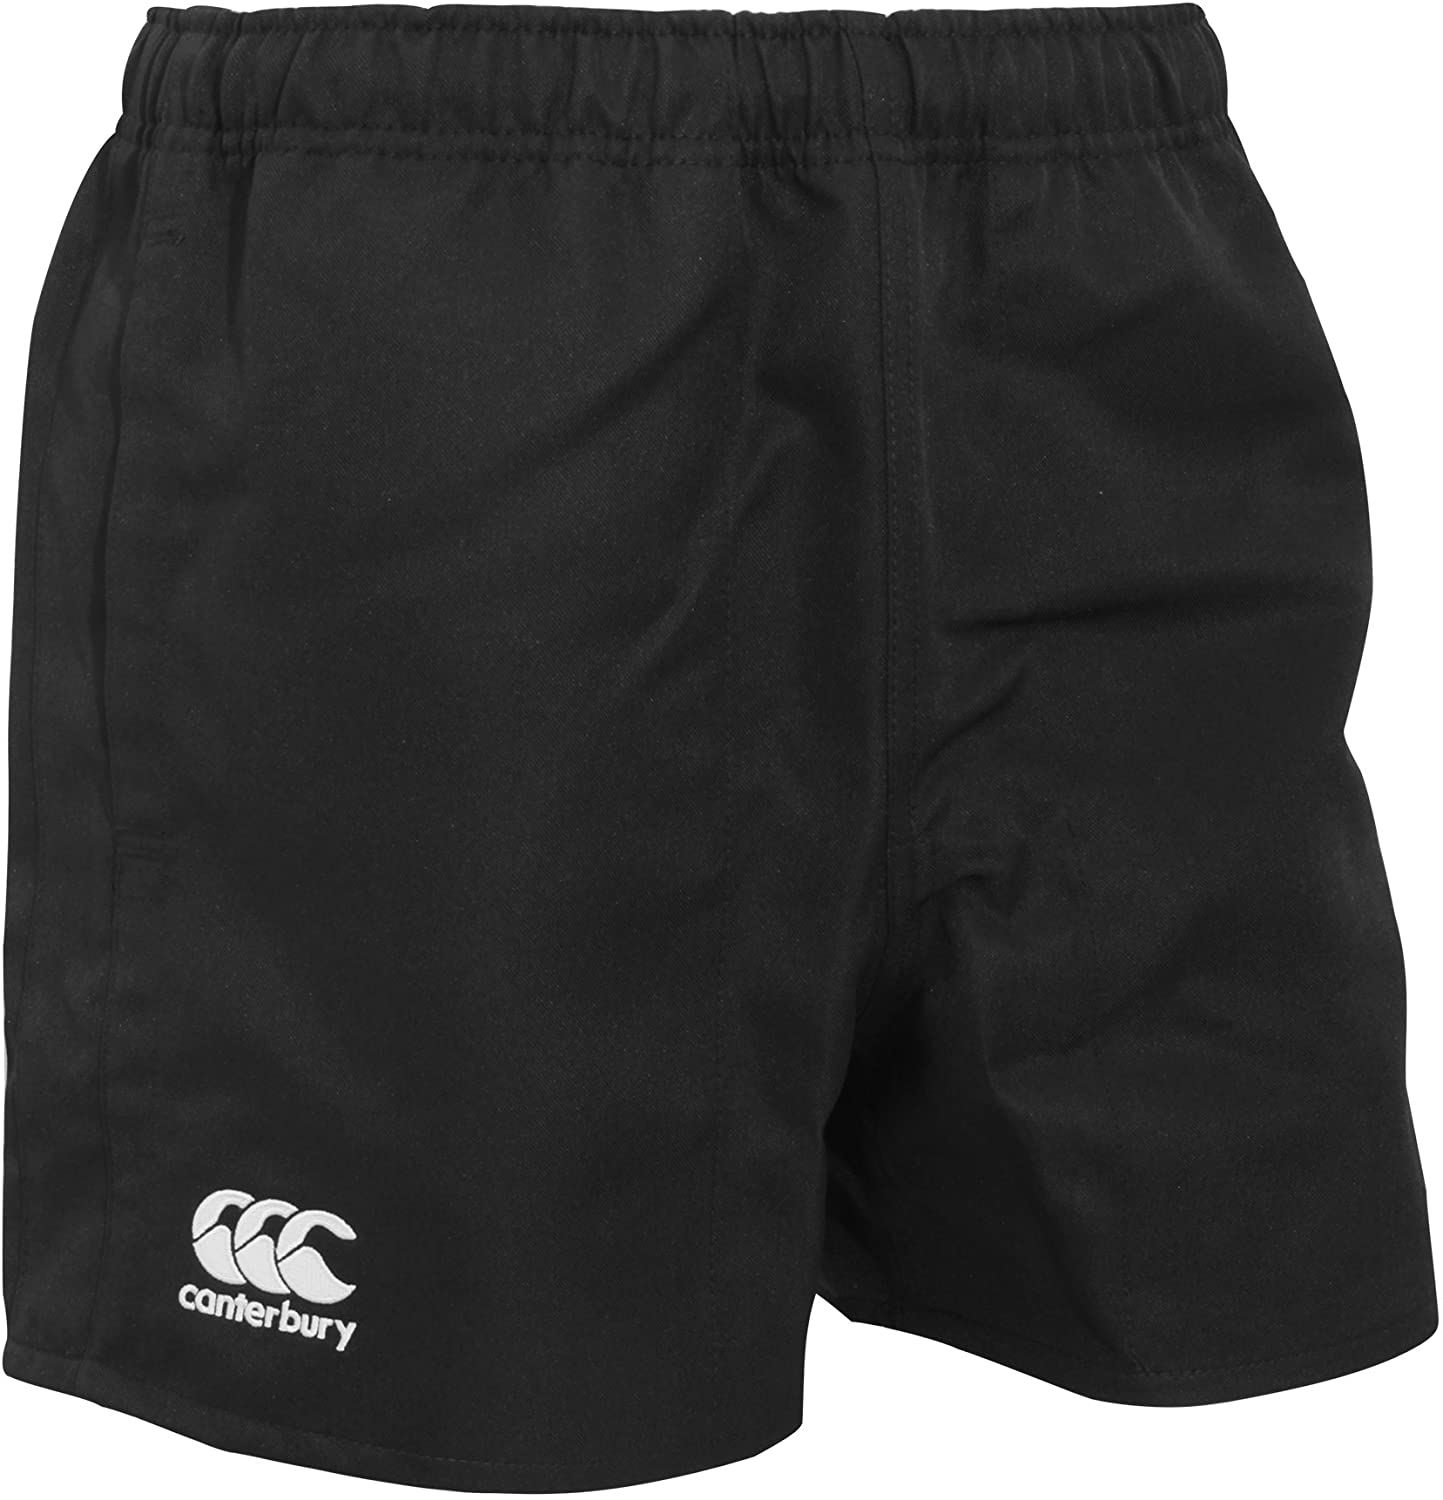 Canterbury Max 72% OFF Mens Limited time trial price Professional Shorts Sports Elasticated